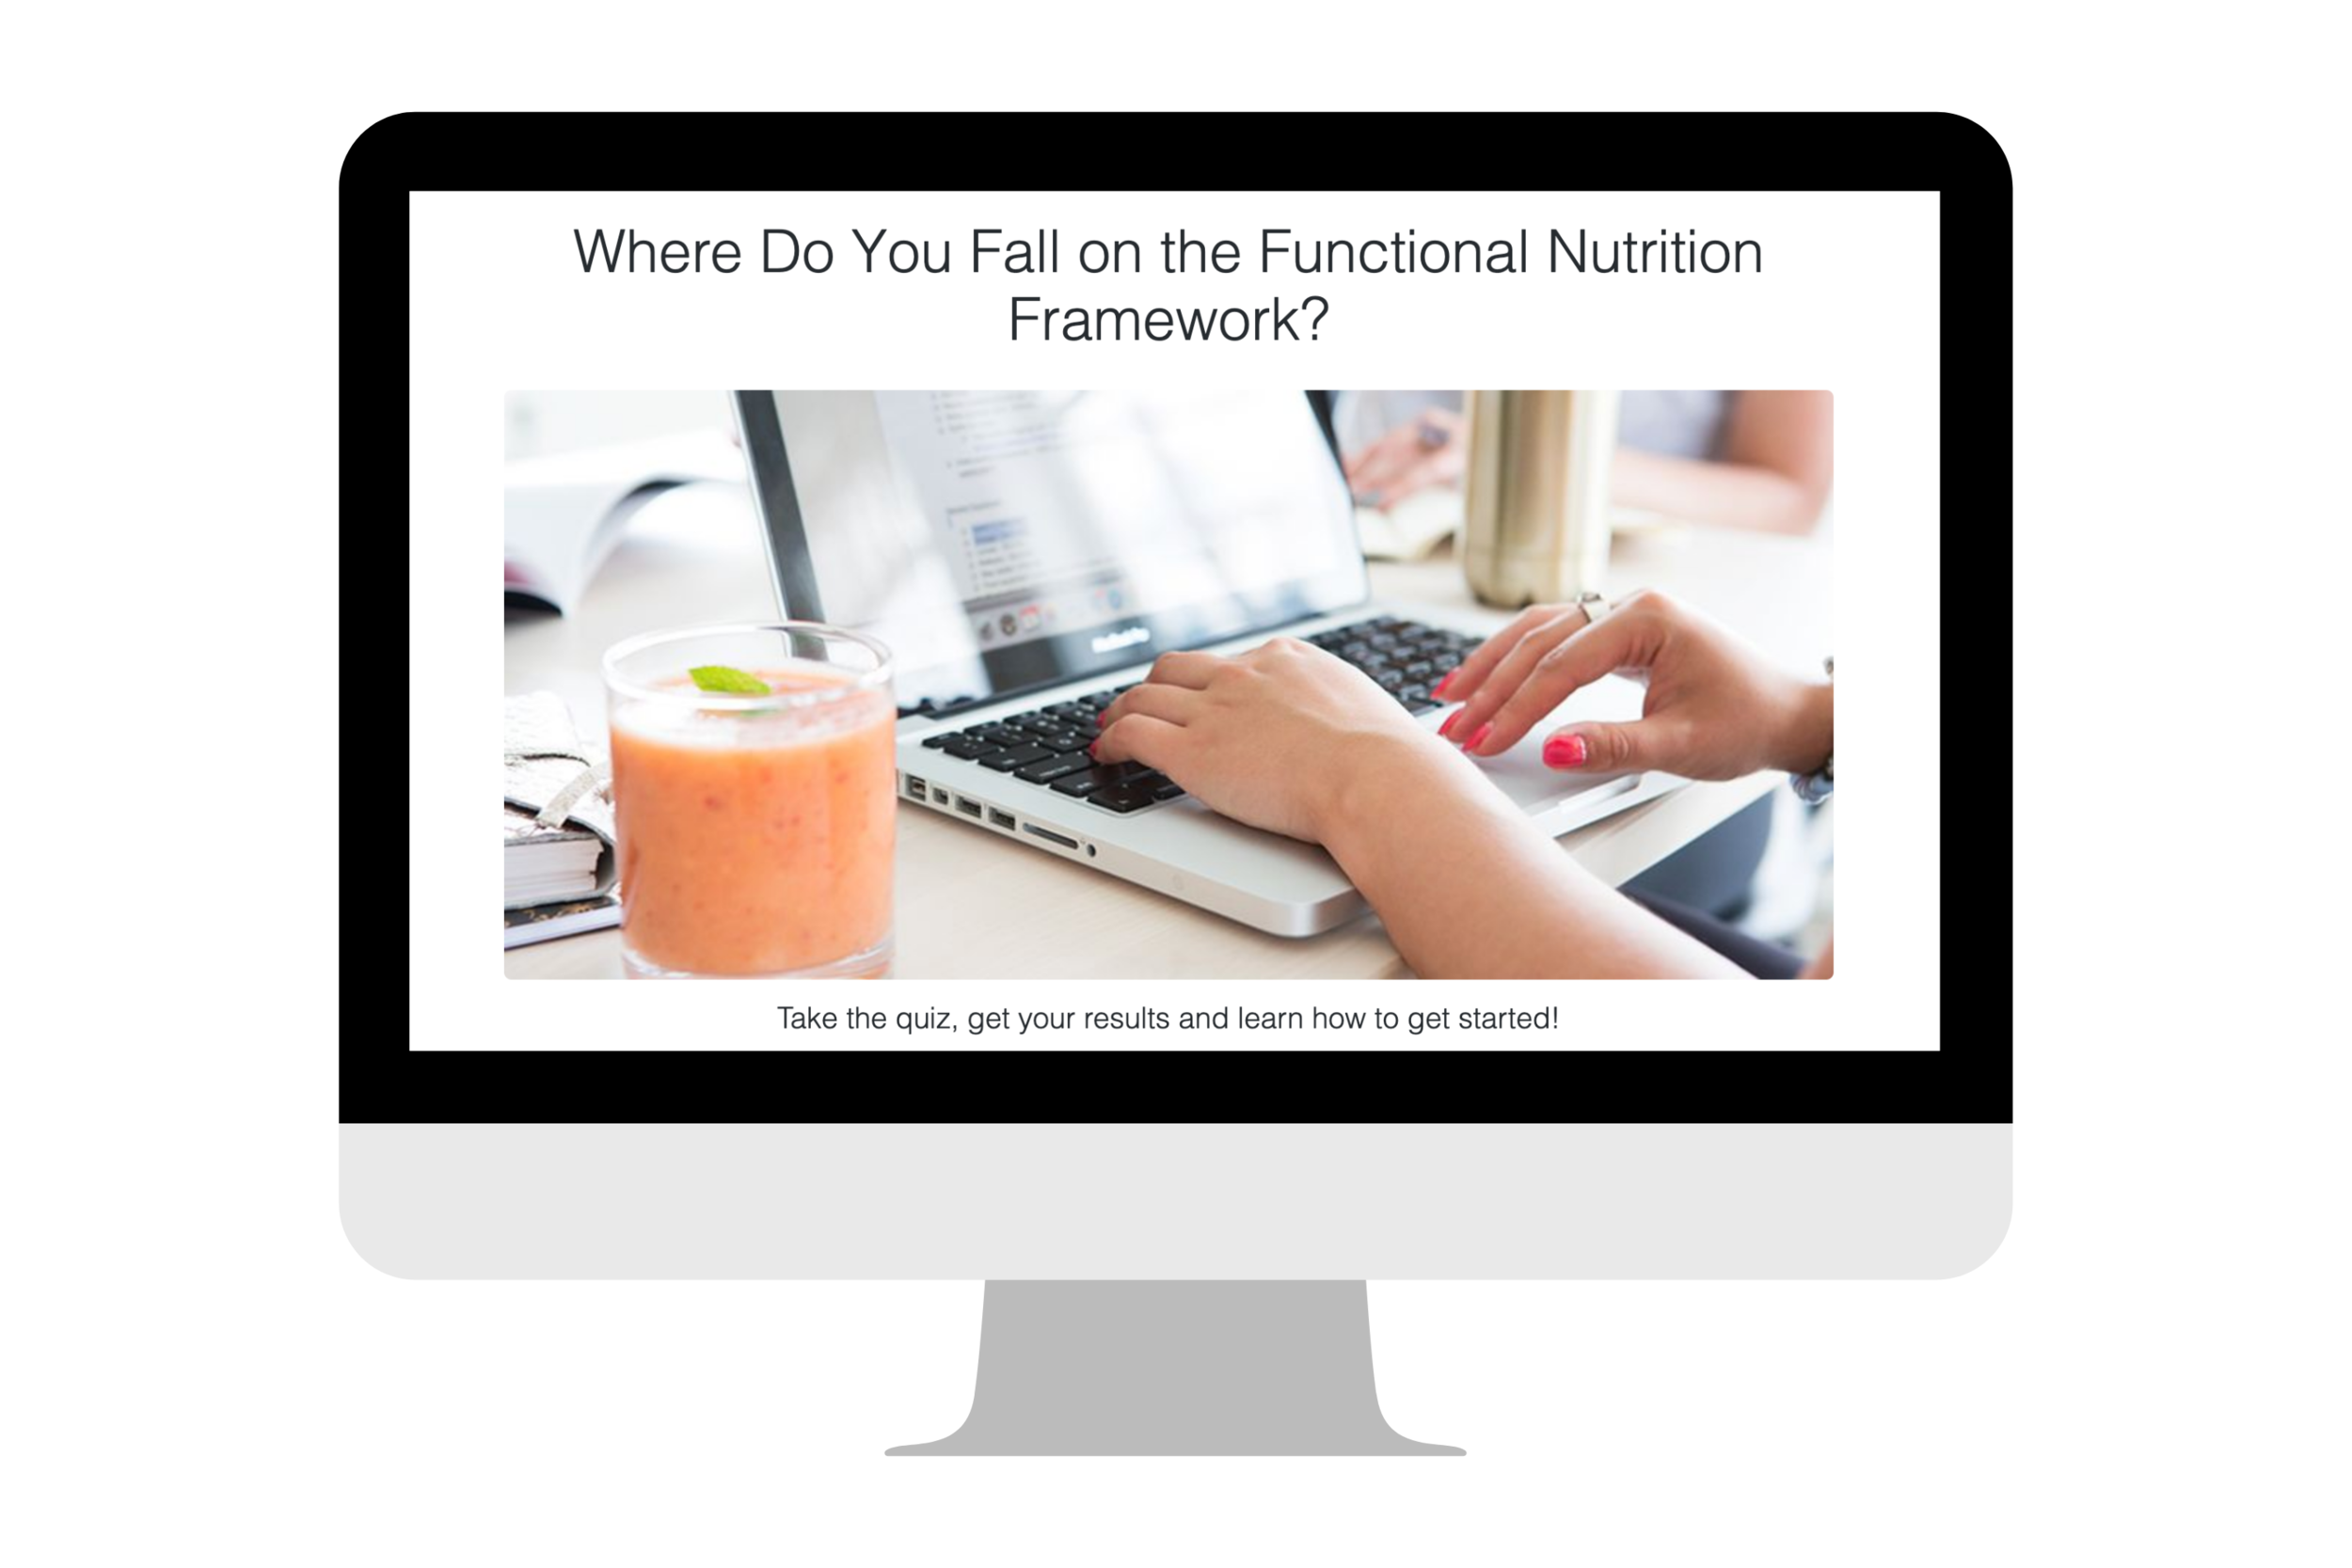 Step 1: - Unsure of where to begin? Take my free quiz and find out where you fall on the Functional Nutrition Framework and where you can get started!